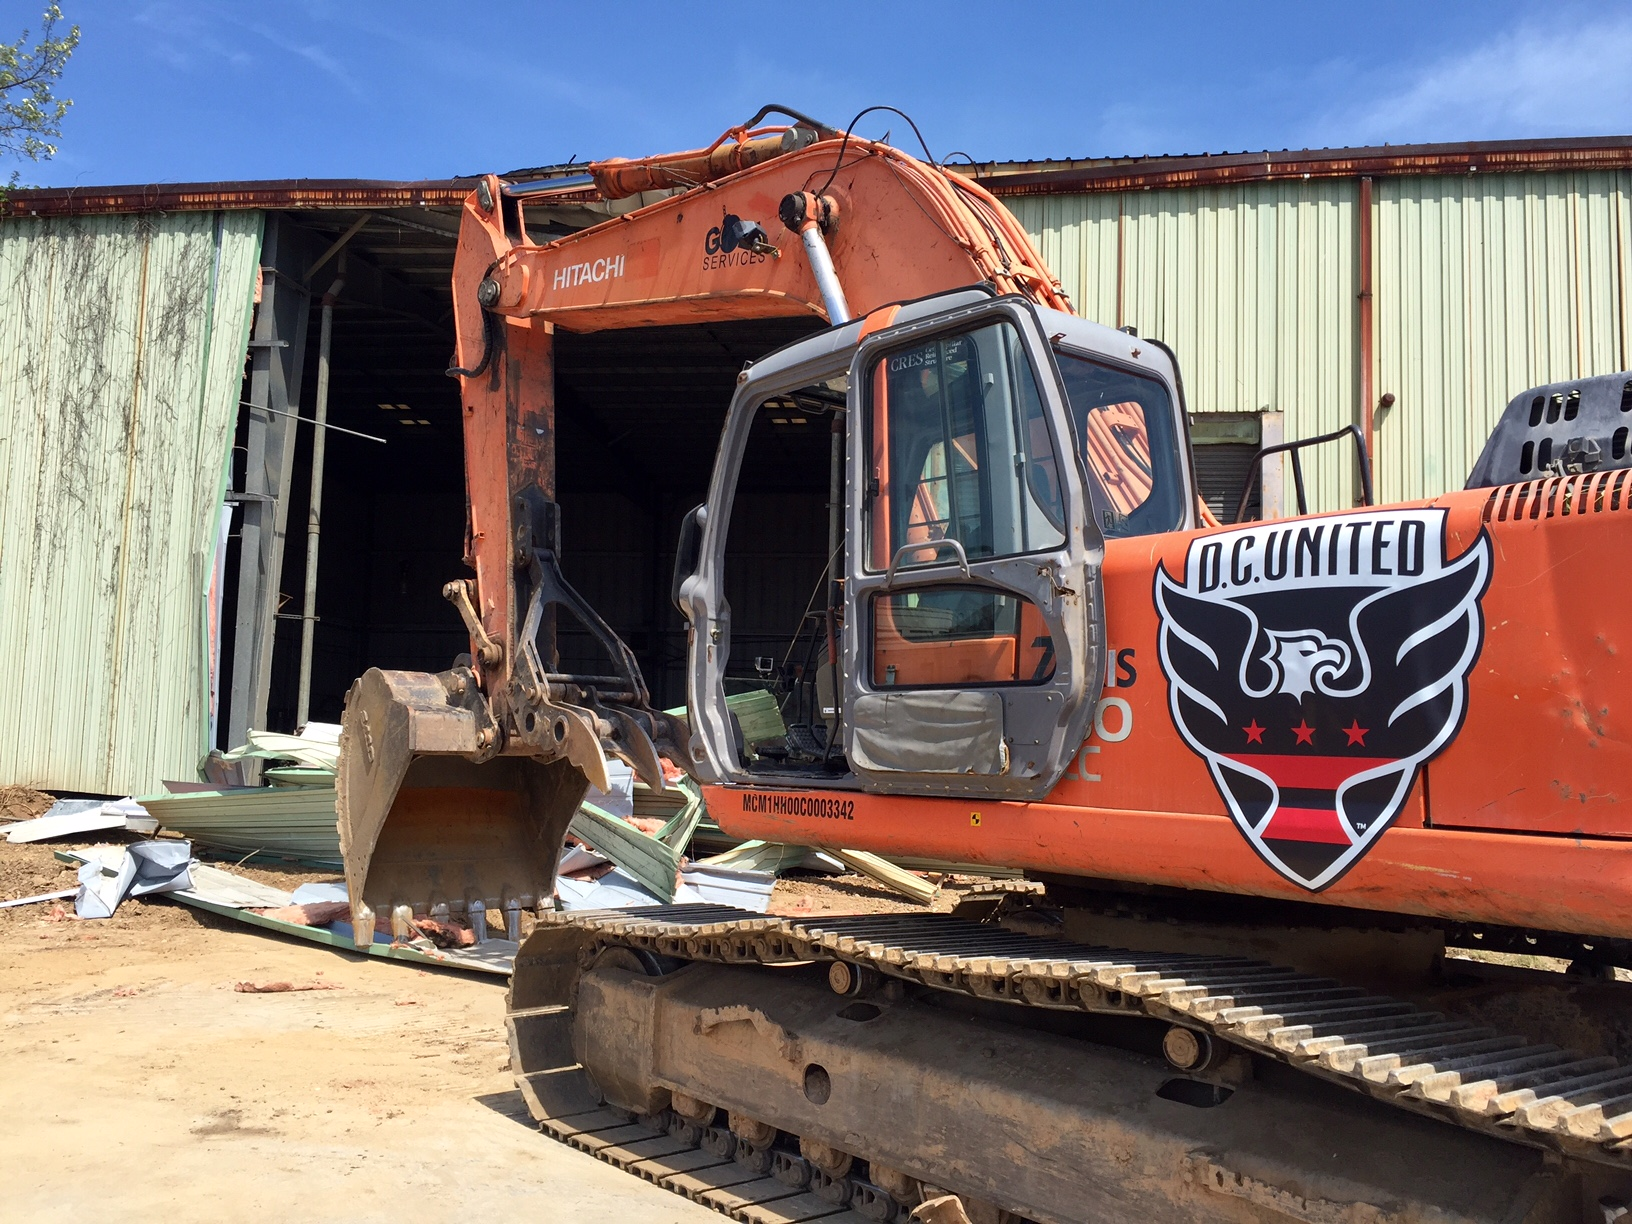 Neighbors question impact as demolition begins at DC United stadium site